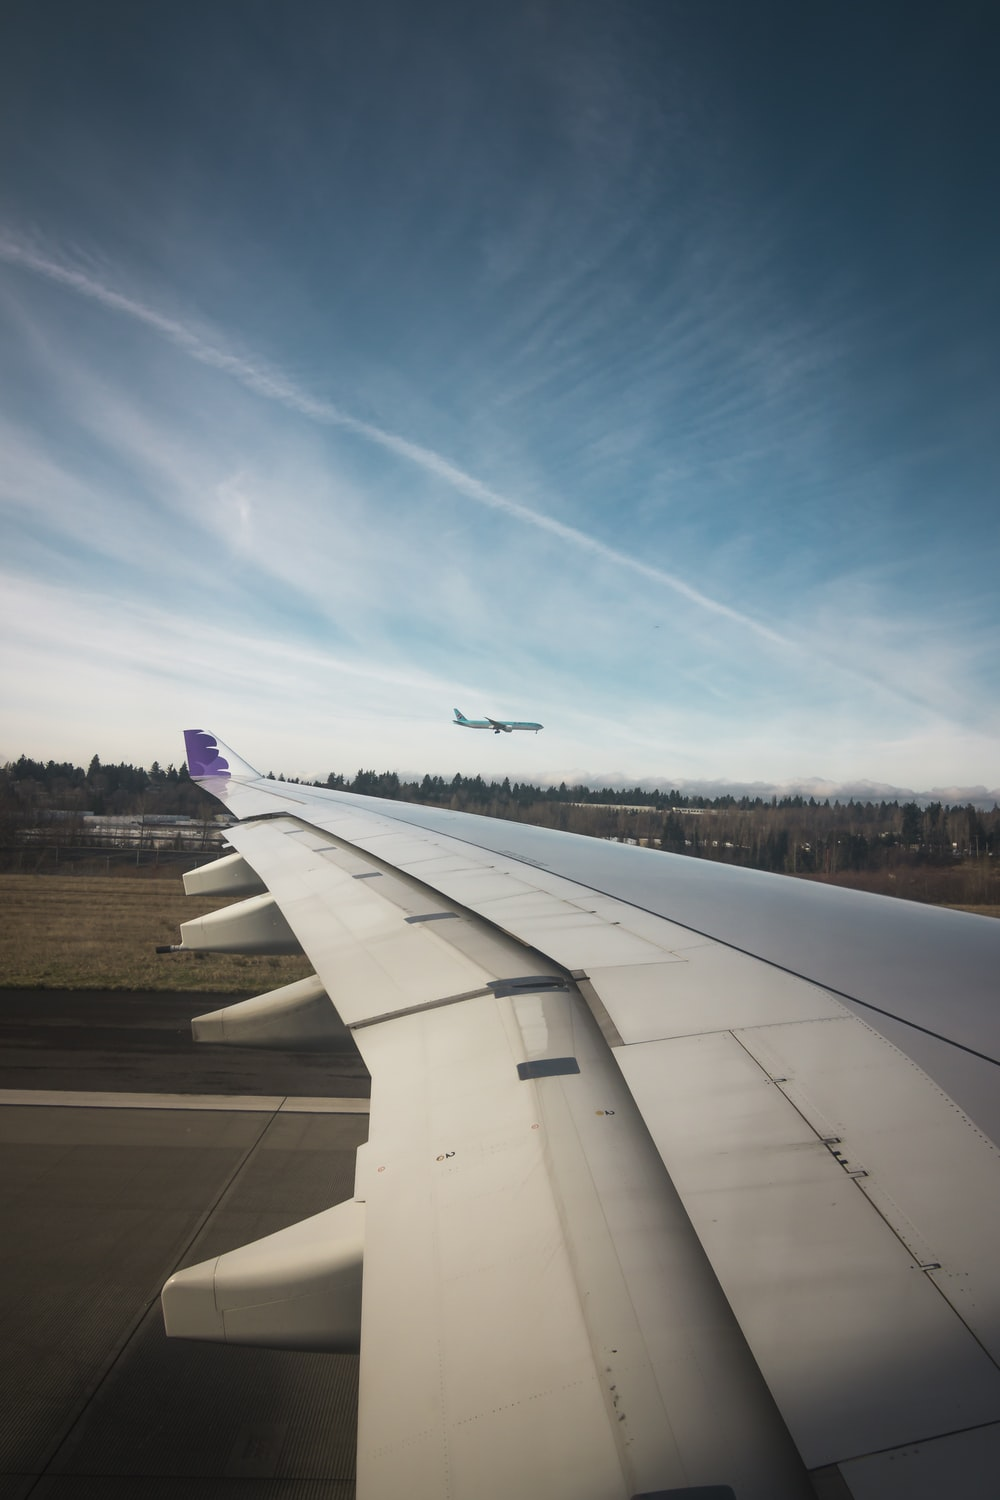 airplane wing under blue and white sky